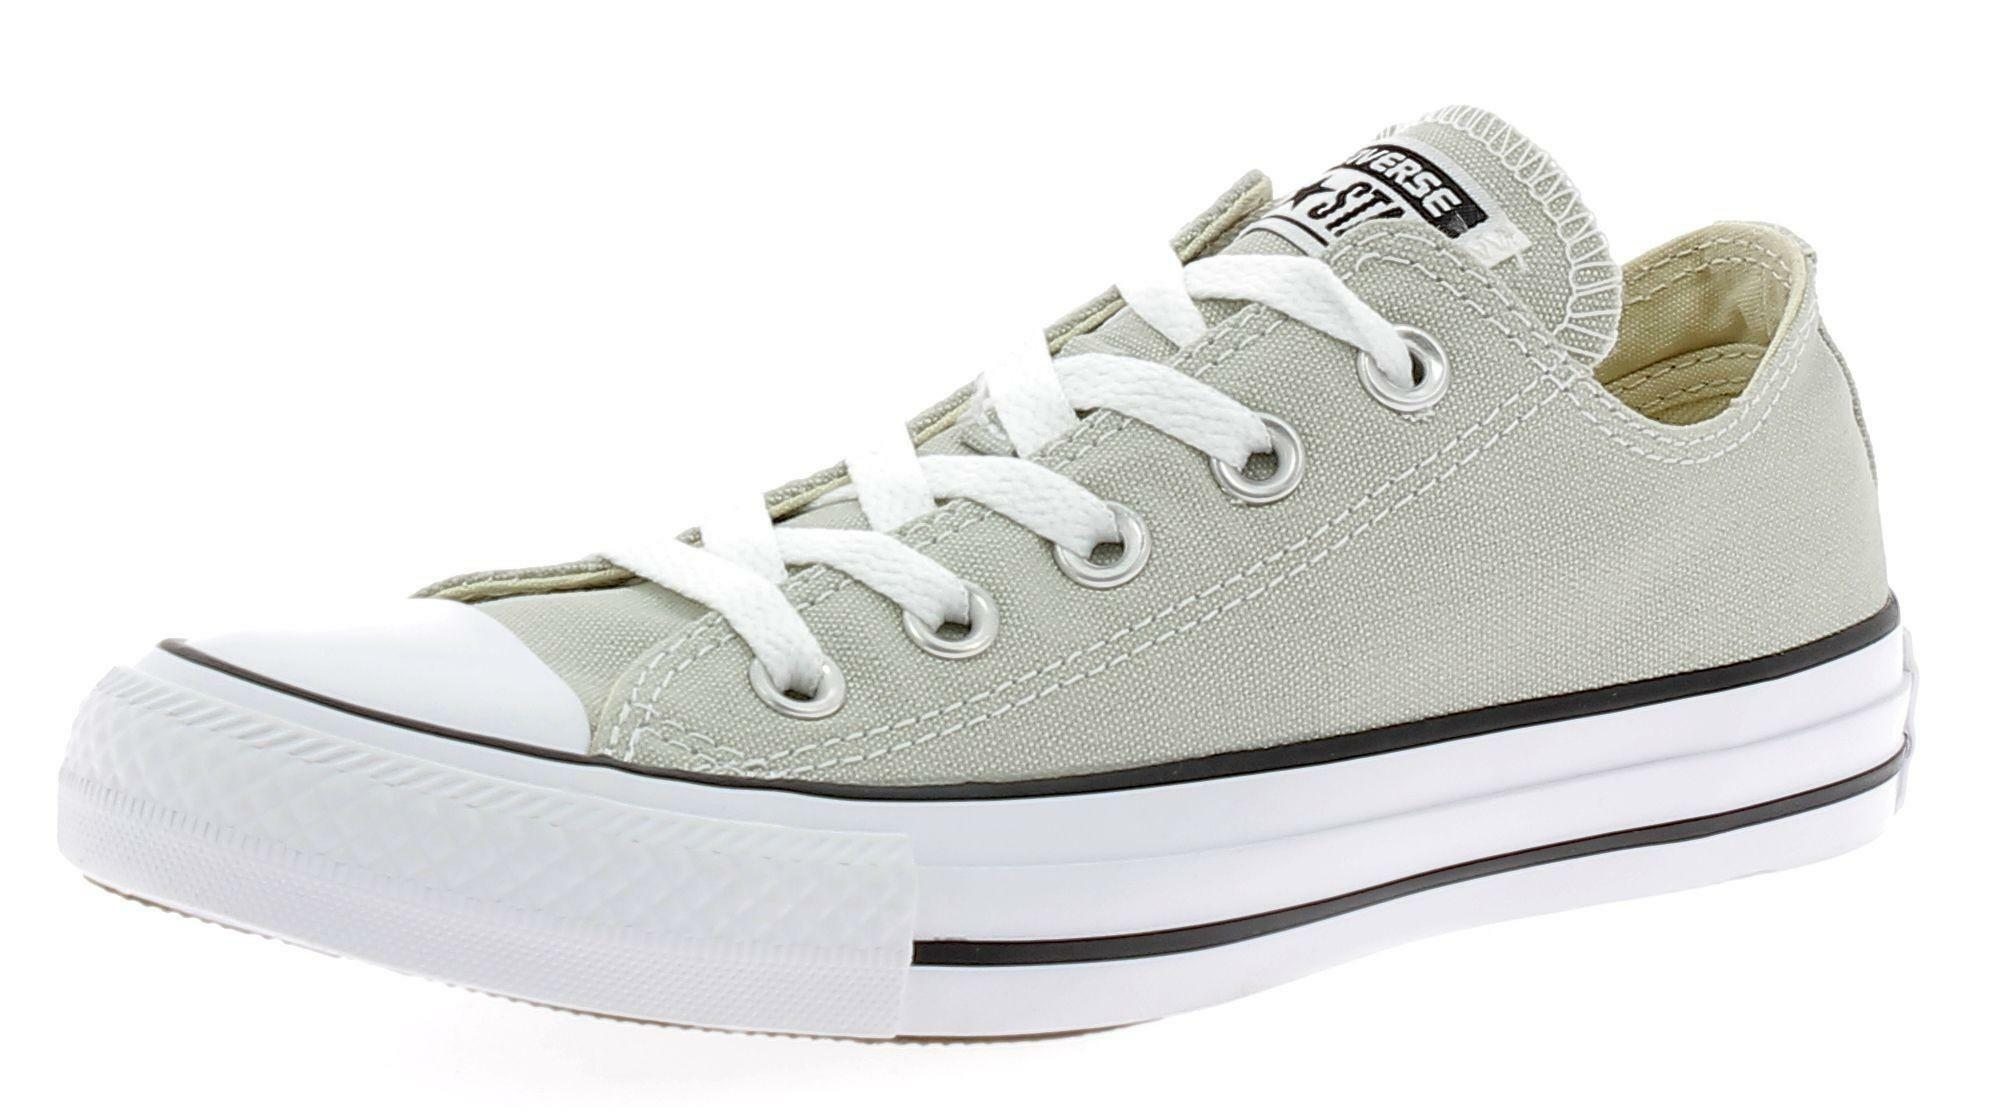 converse converse all star chuck taylor ox light surplus scarpe sportive grigie